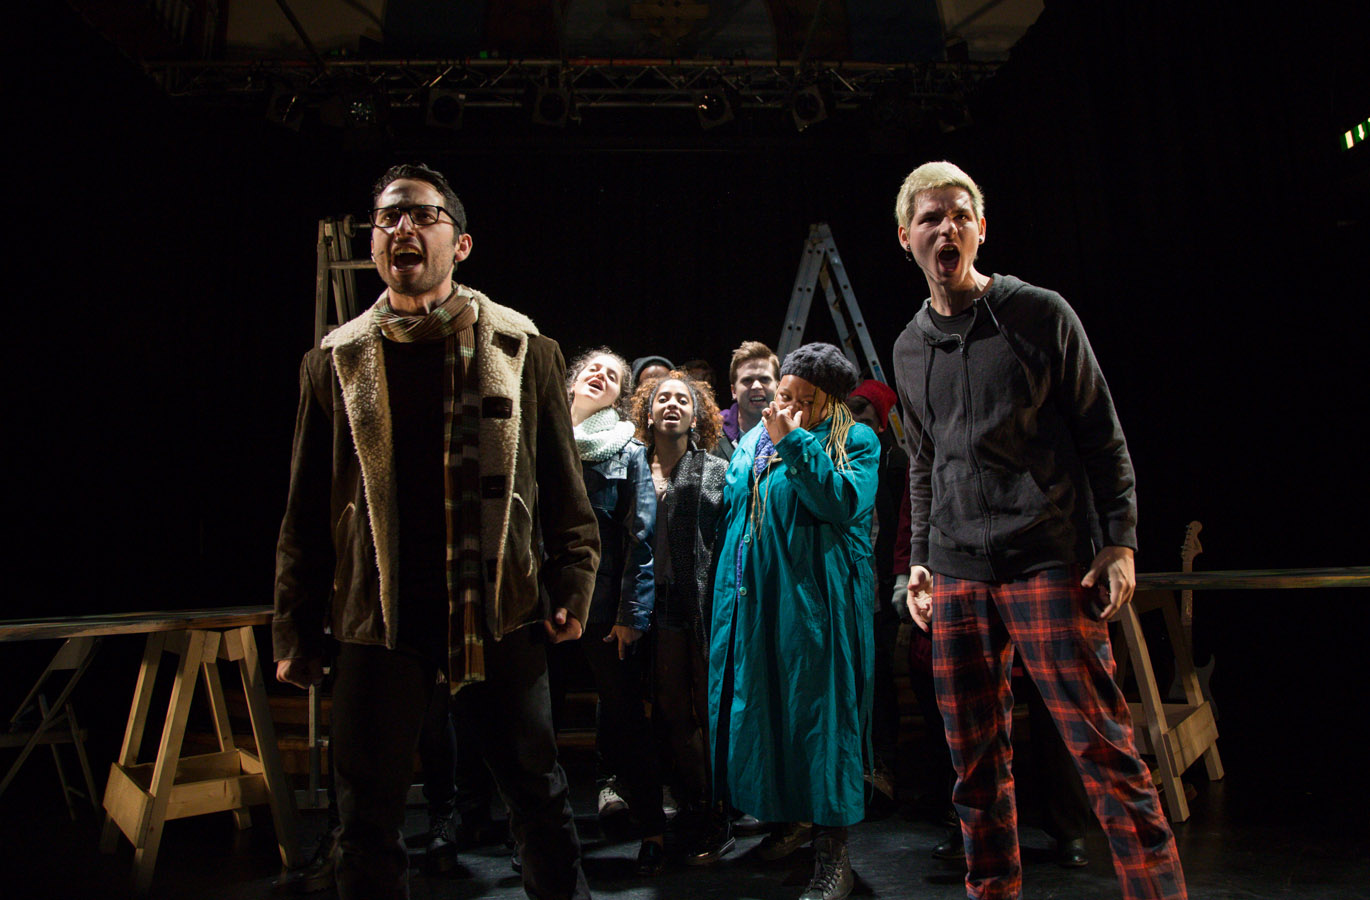 """RENT for a new generation, with a faultless cast, exquisite performances, and vocals that move the soul."" - ScotsGay, Edinburgh Festival Fringe for RENT (2015)"